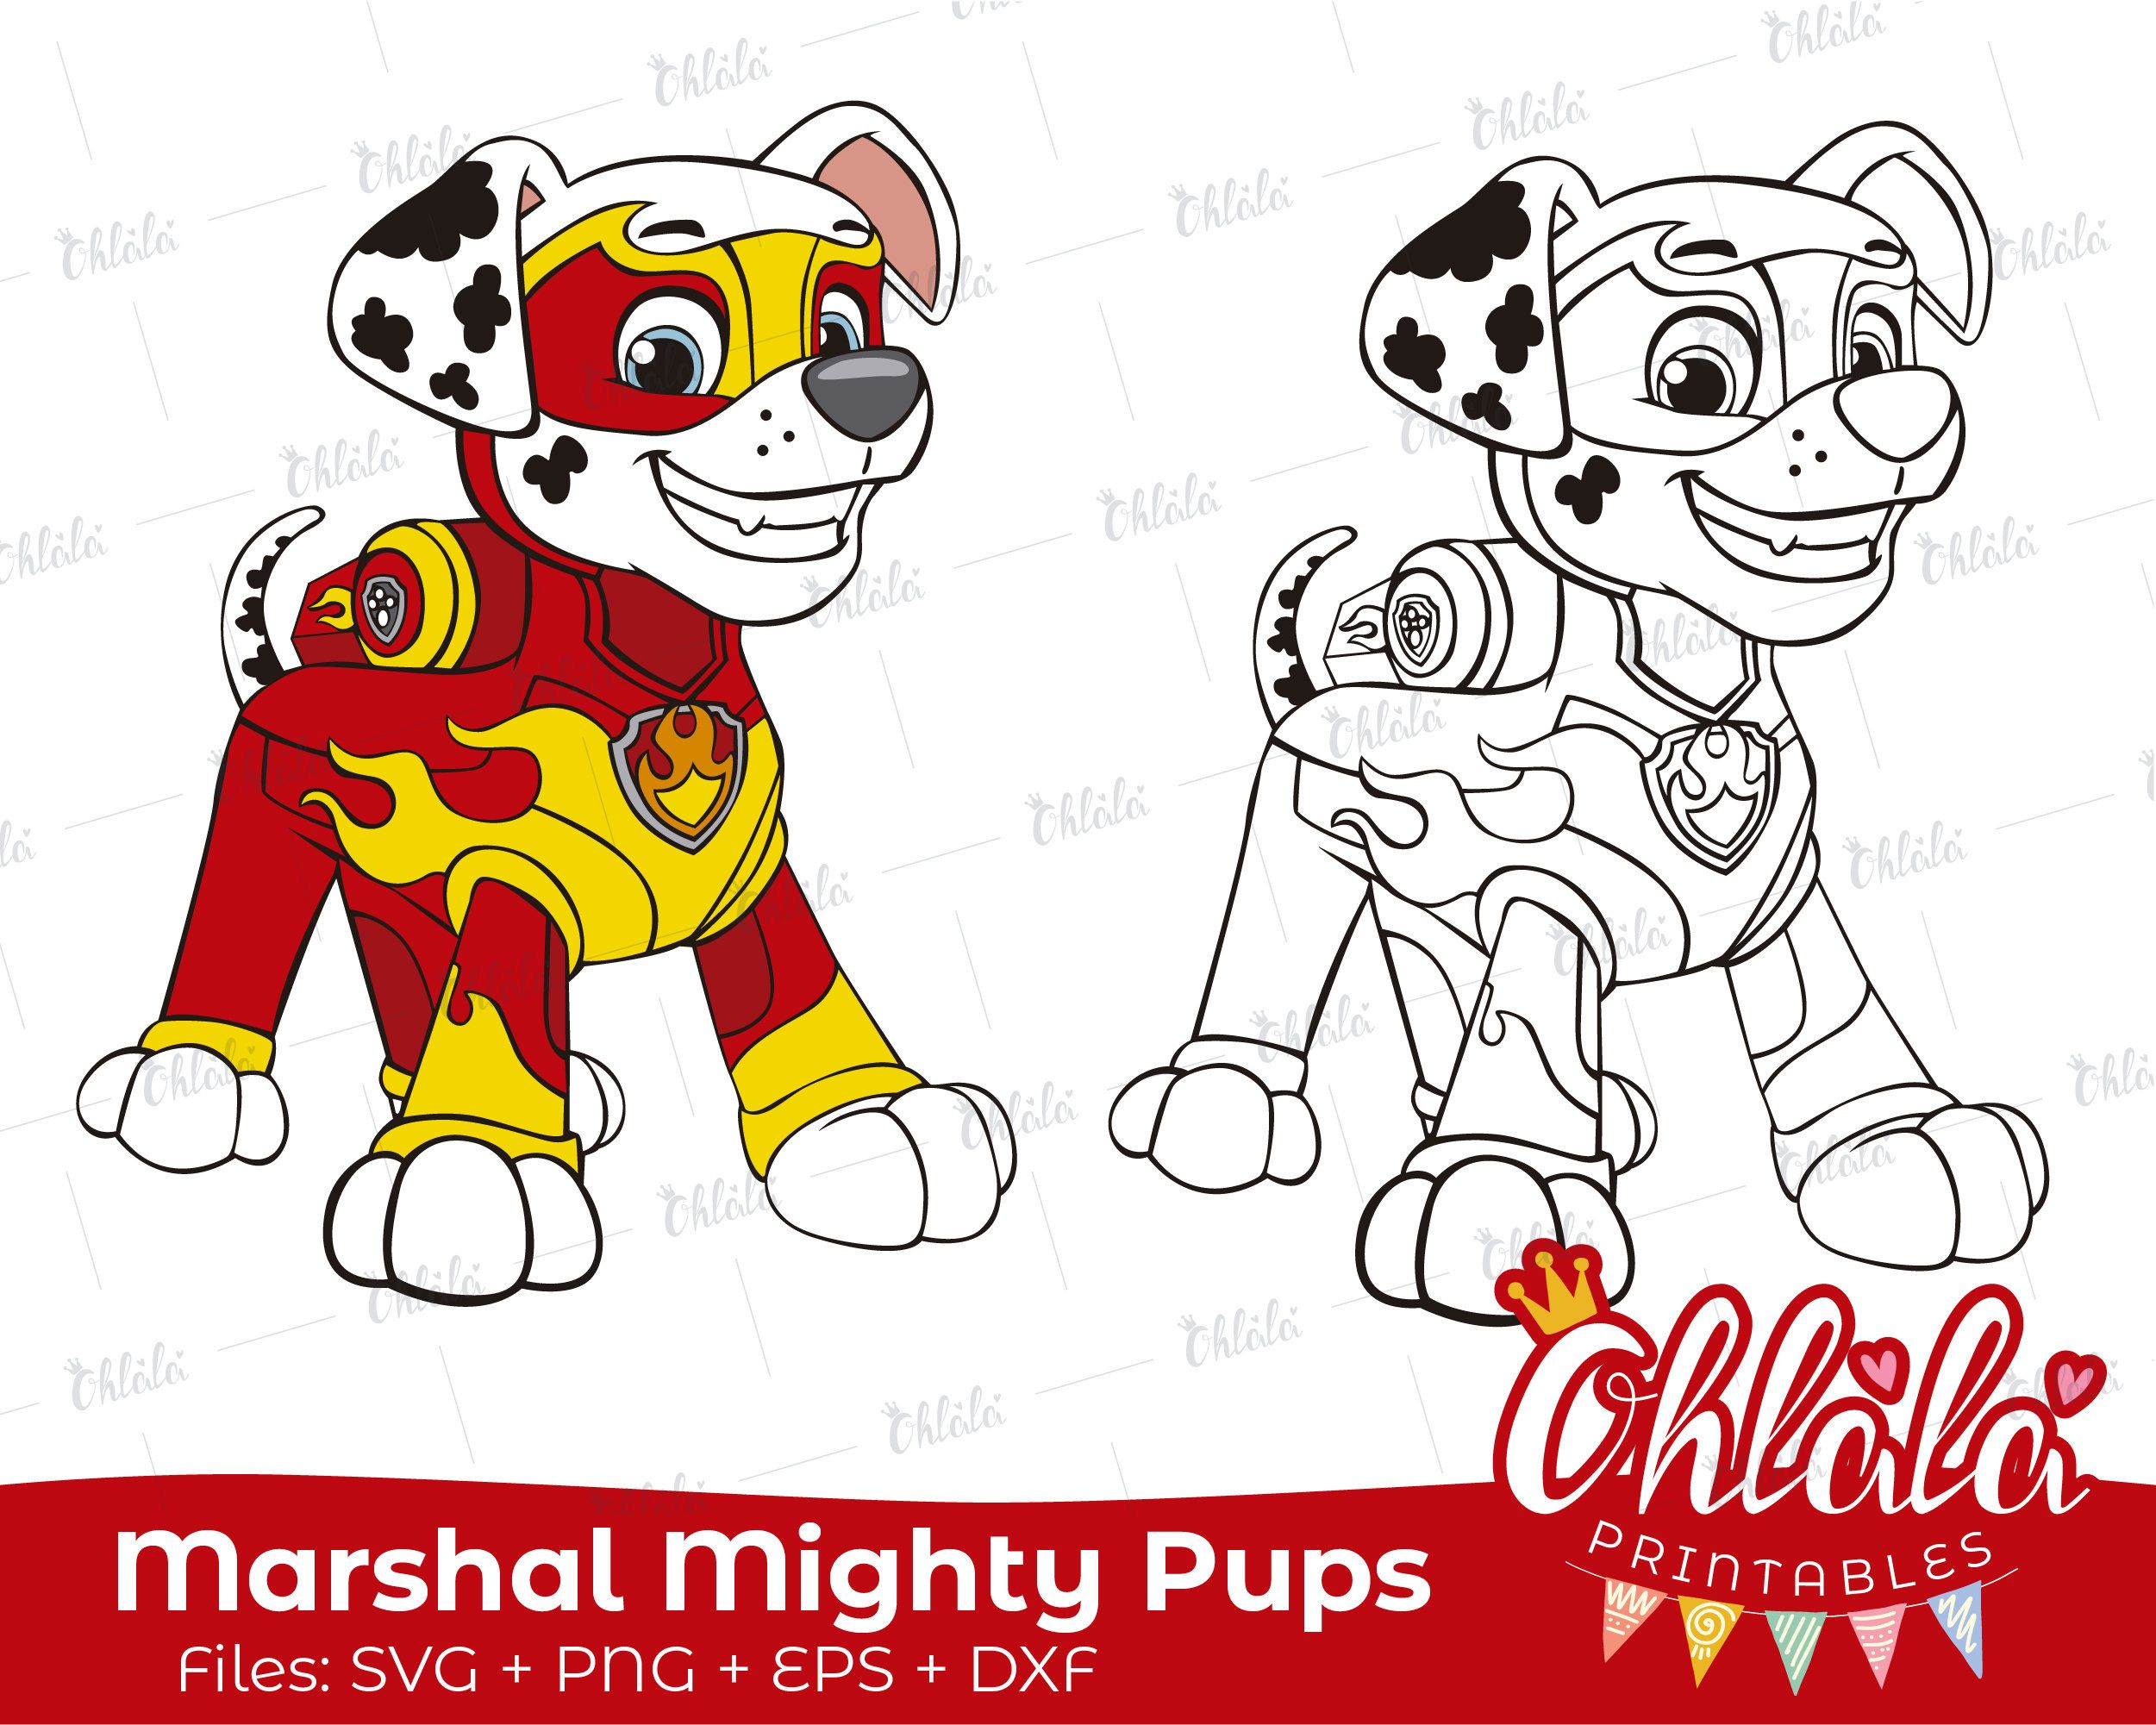 Marshall Paw Patrol Mighty Pups Clipart Character Movie Svg Png Eps Dxf Files Printables Party Happy Birthda Paw Patrol Coloring Marshall Paw Patrol Paw Patrol